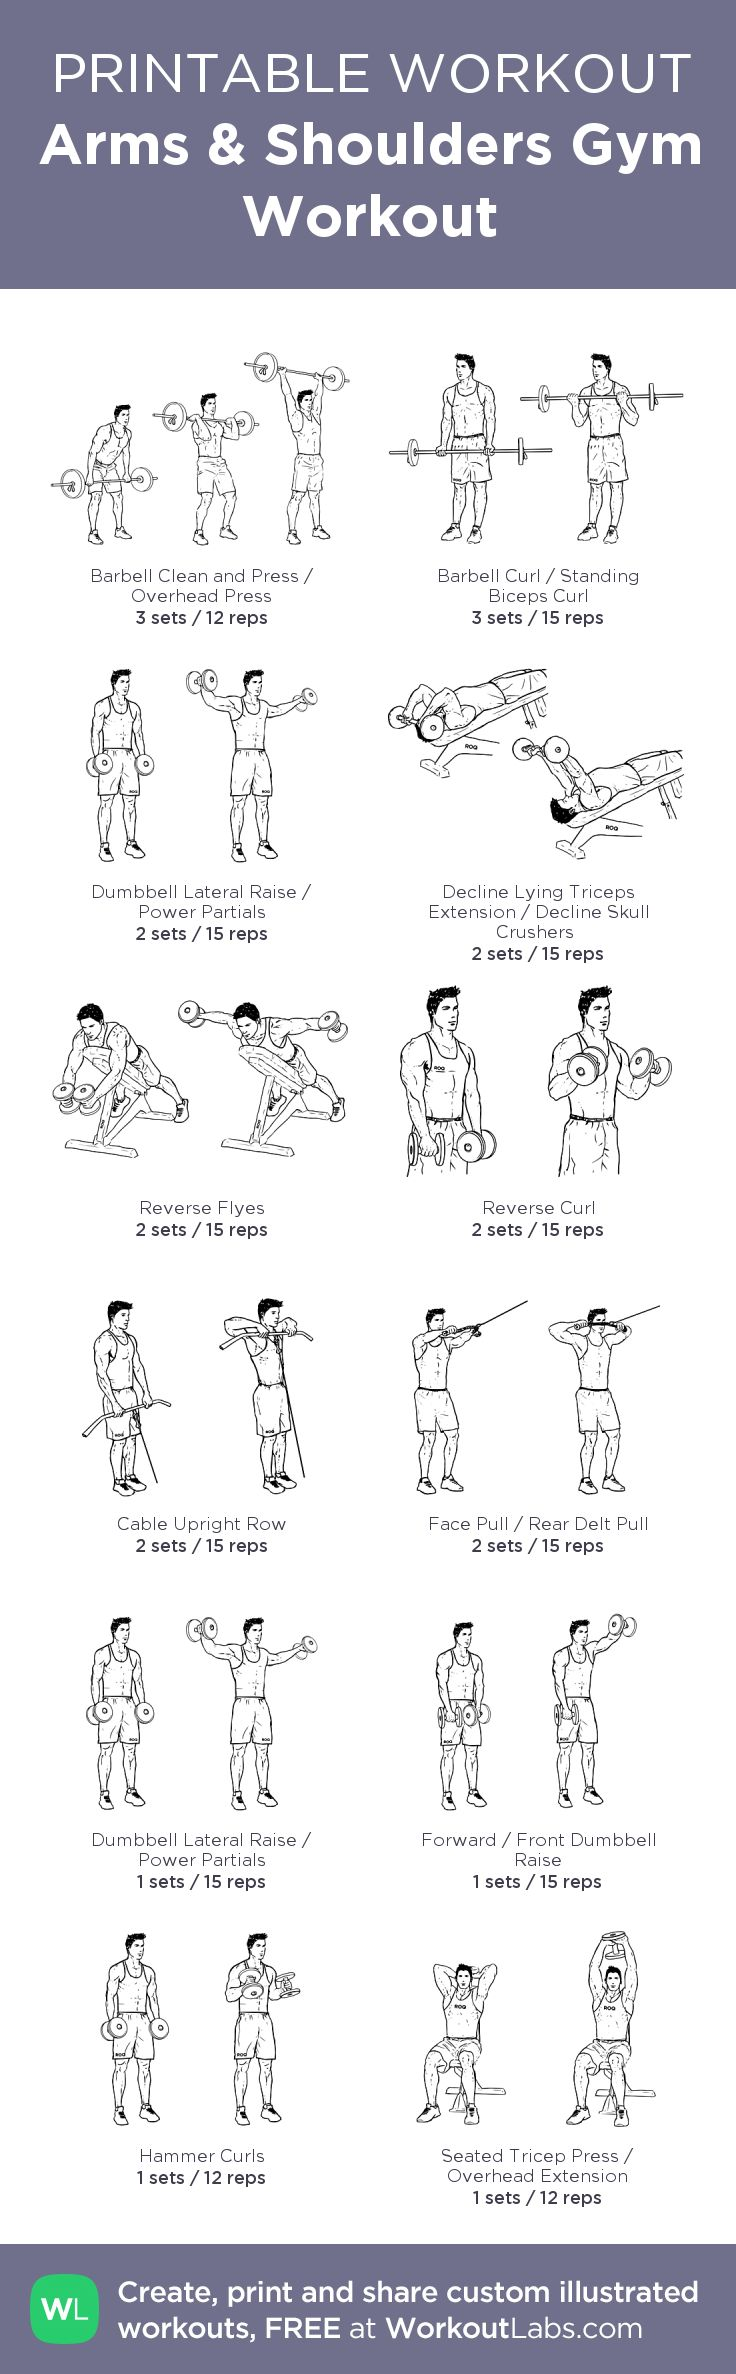 Arms & Shoulders Gym Workout –my custom workout created at WorkoutLabs.com • Click through to download as printable PDF! #customworkout